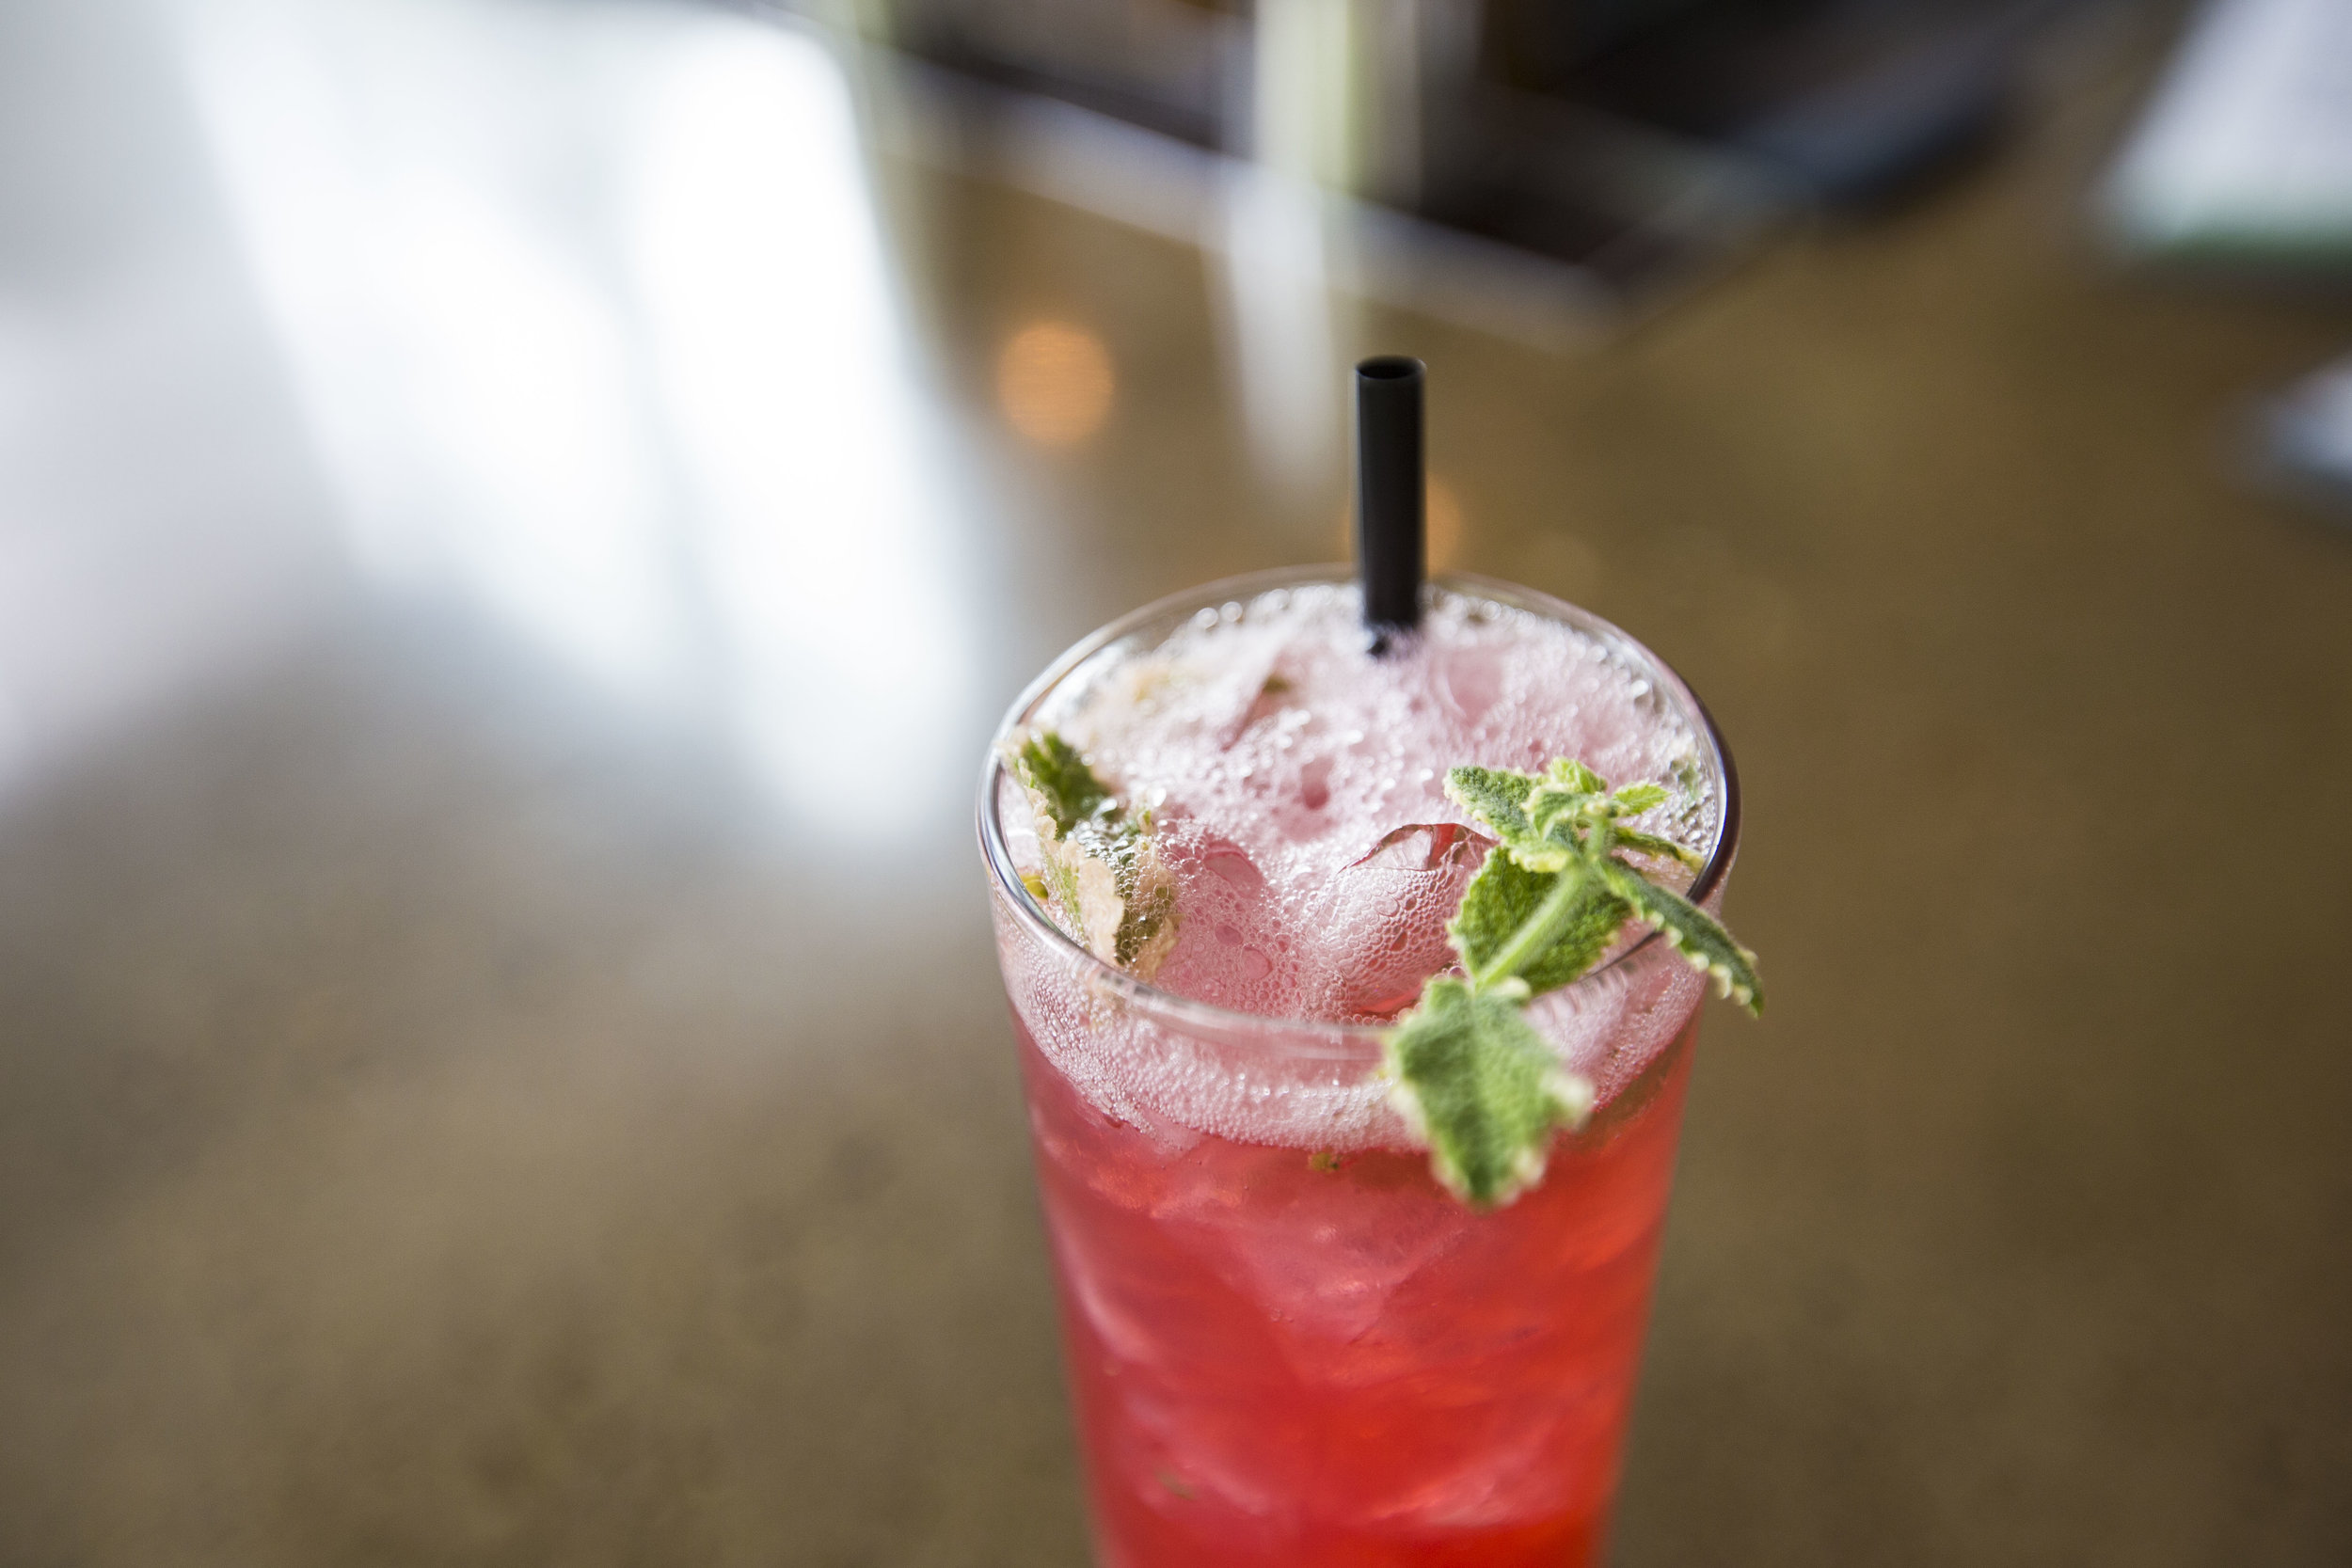 Men in Blackberries cocktail with Tito's vodka, blackberry syrup, lemon and soda water at Graze on July 22, 2016 in Madison, WI.